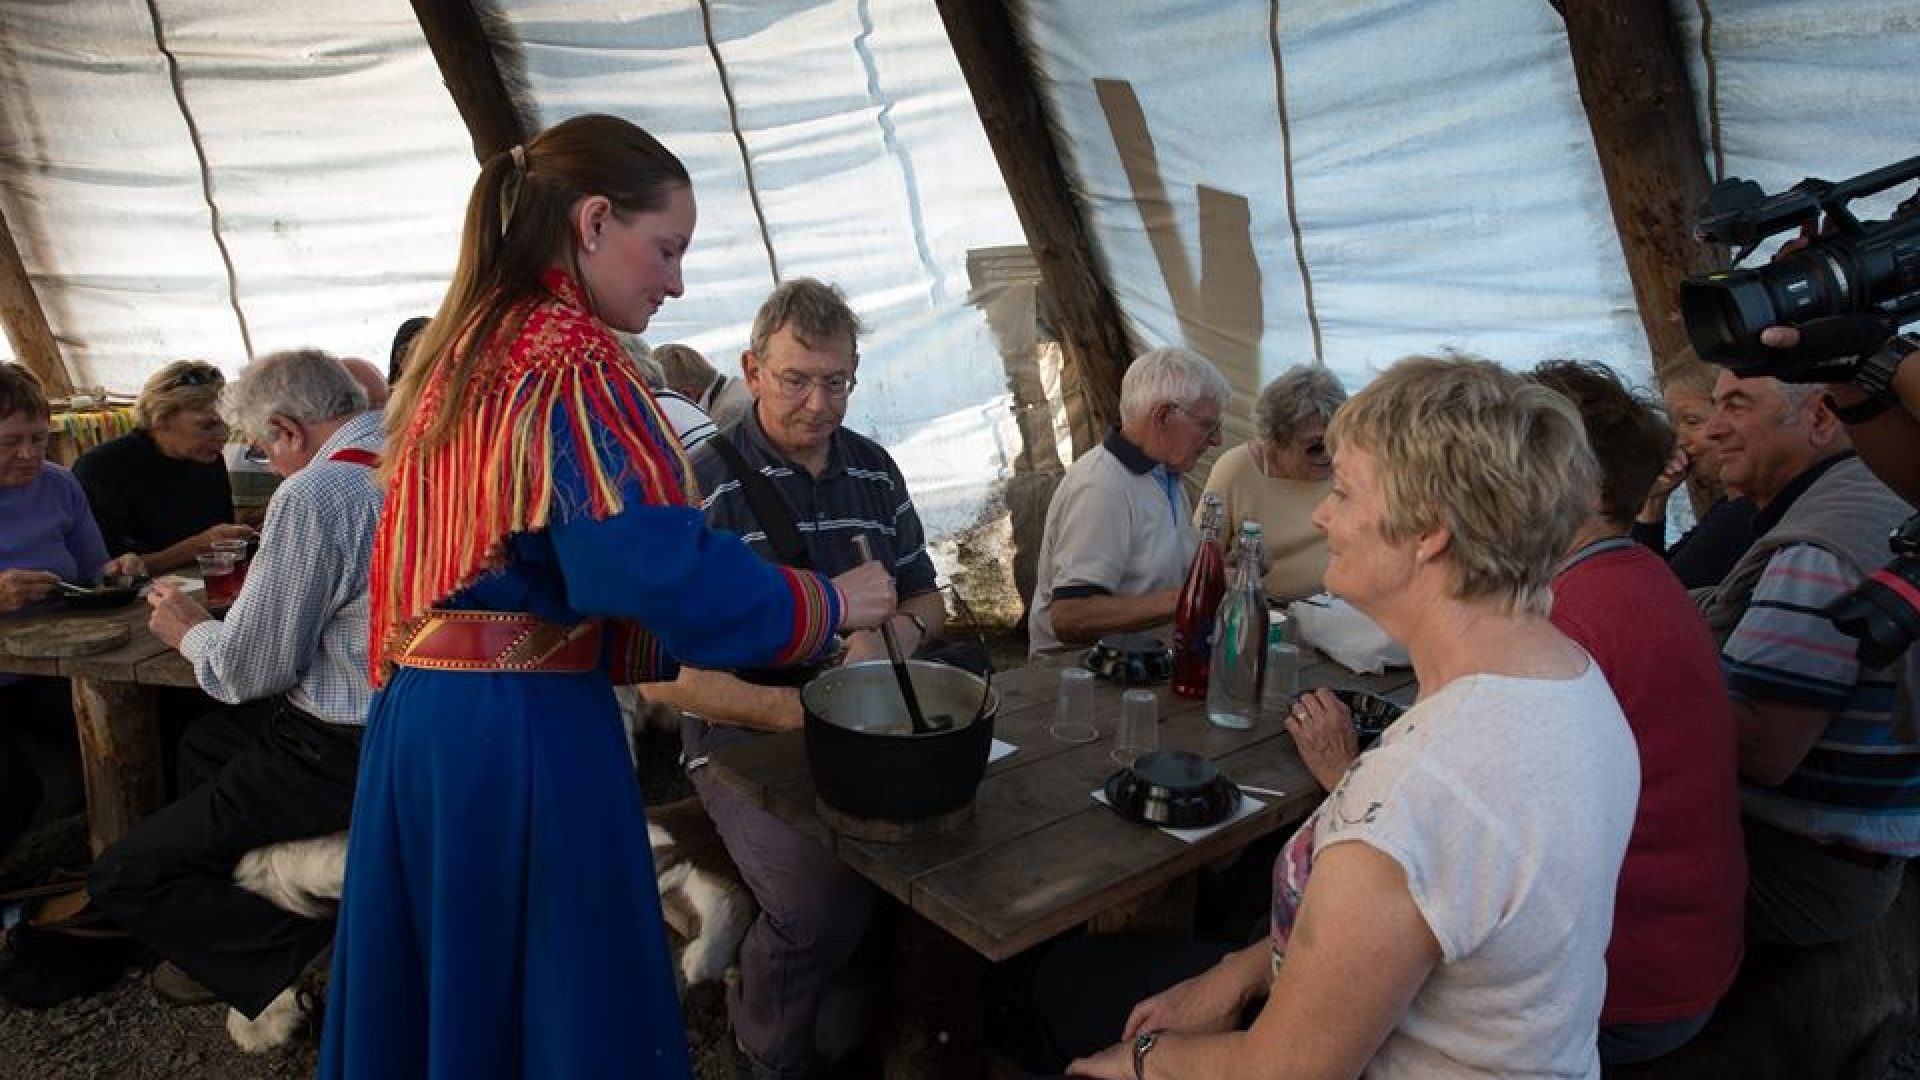 a sami girl giving food to guests